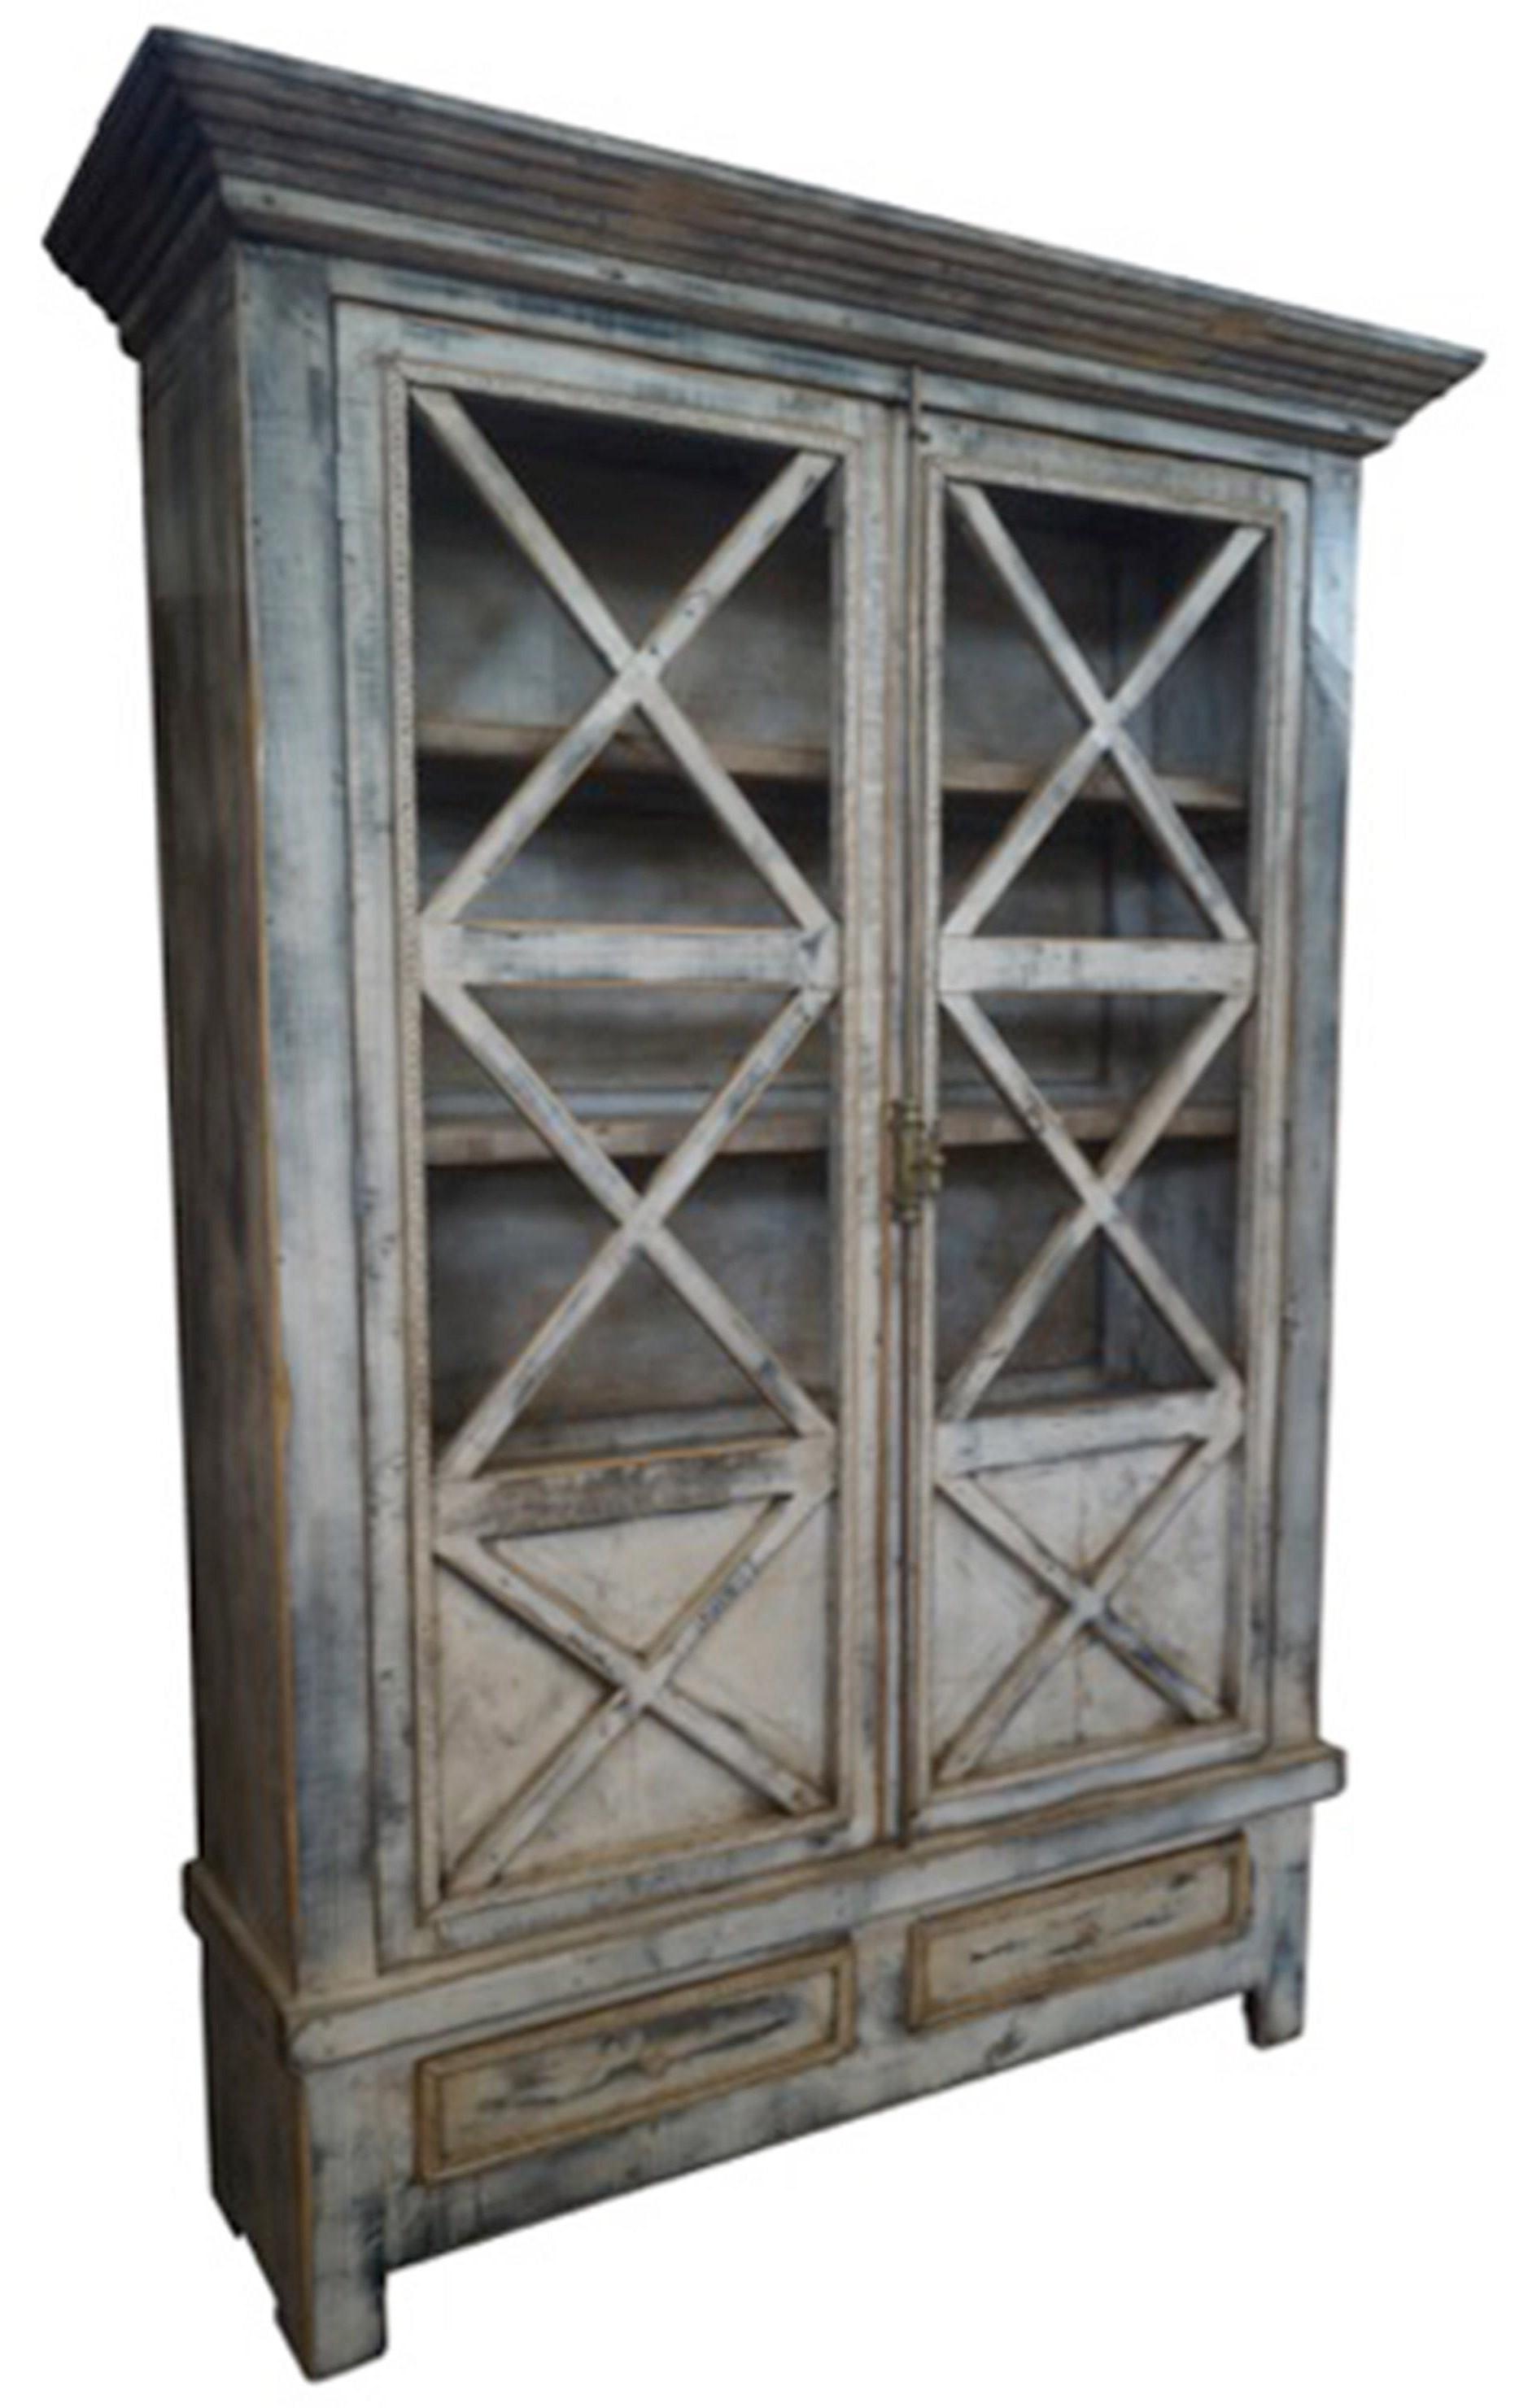 Furniture Source International Accent Pieces York Cabinet - Item Number: FSI-TH-148CAB